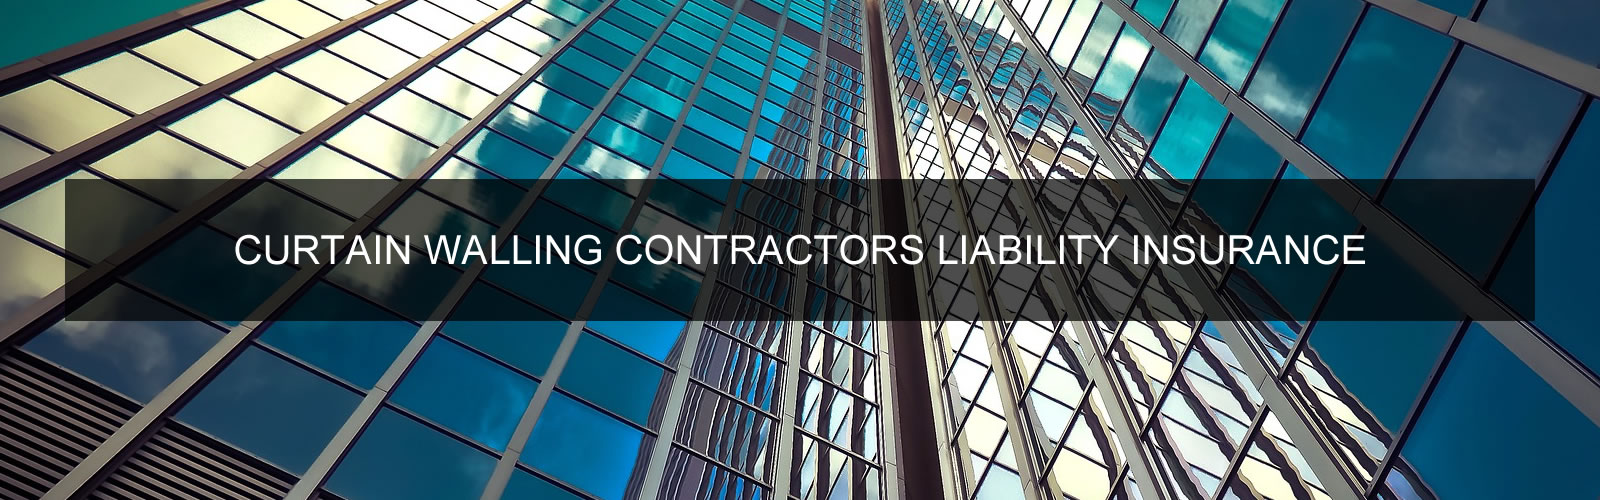 CURTAIN WALLING CONTRACTORS LIABILITY INSURANCE